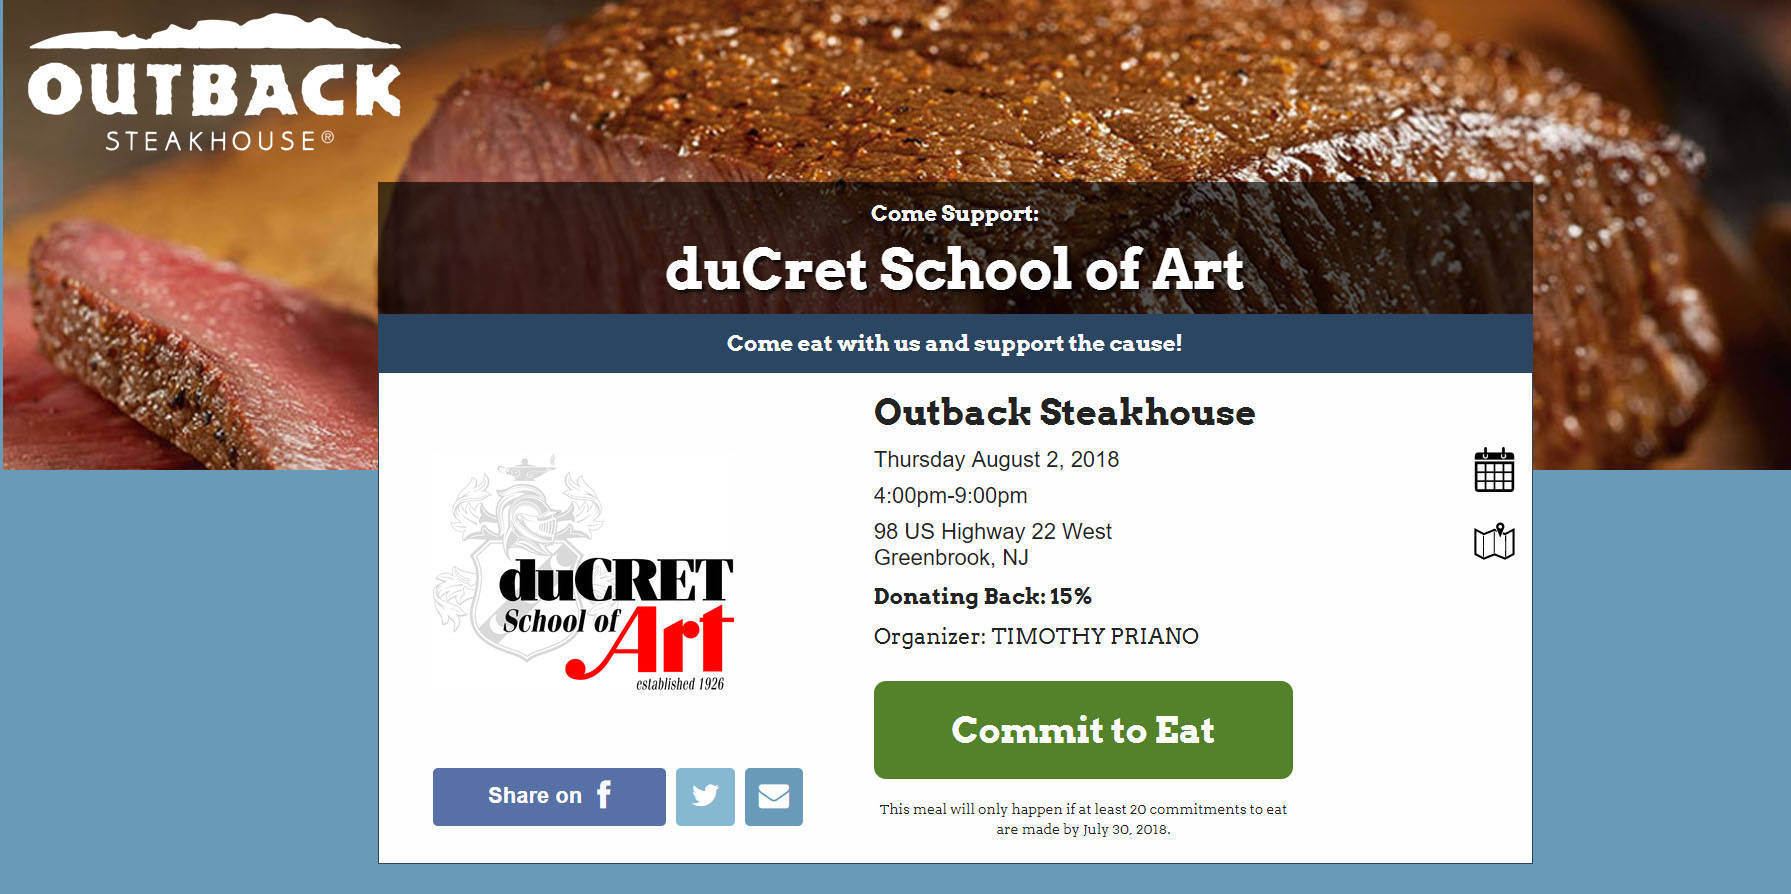 DuCret School of Art and Outback Steakhouse Fundraiser - TAPinto